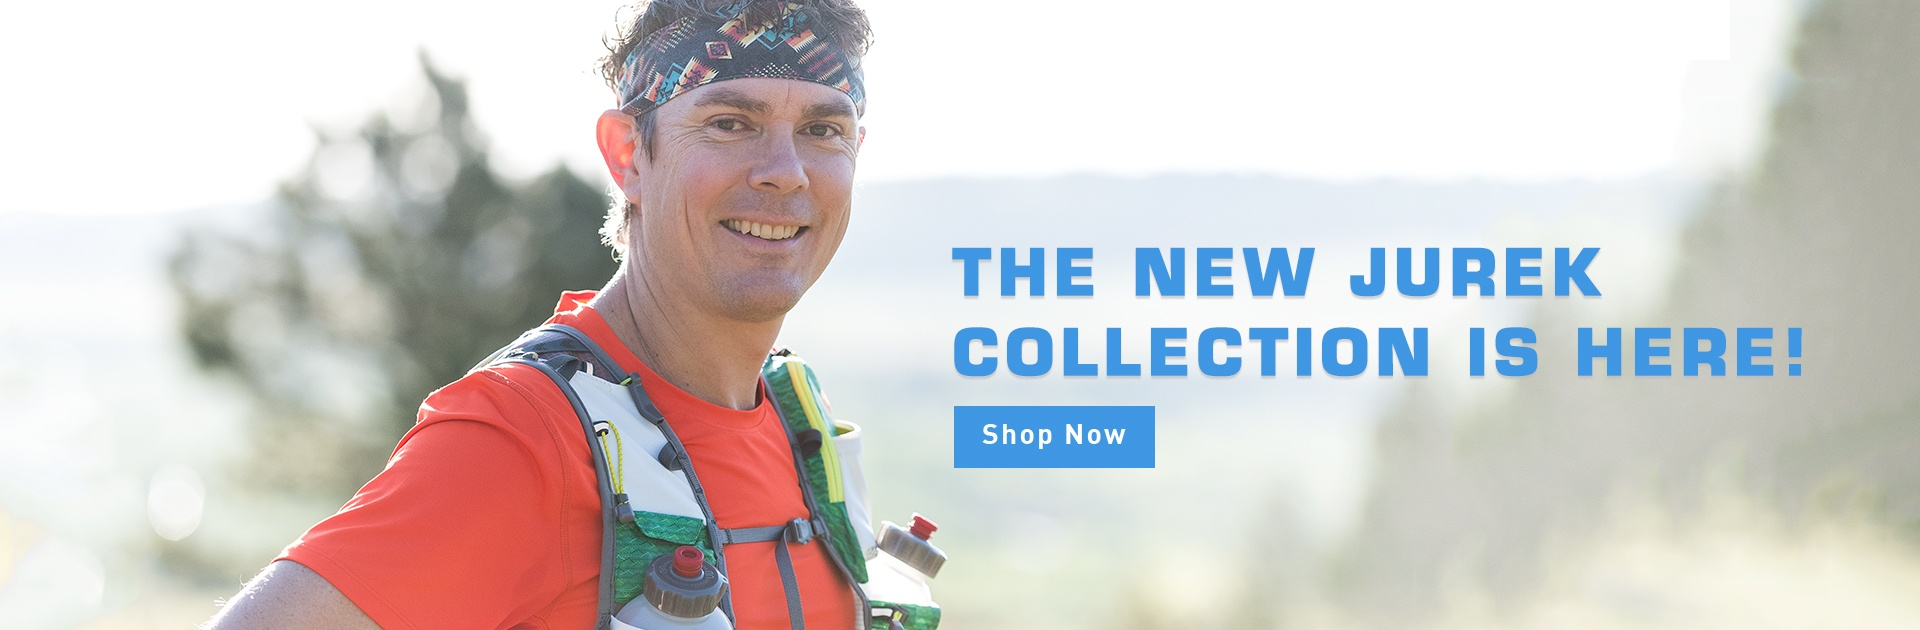 The New Jurek Collection is Here!